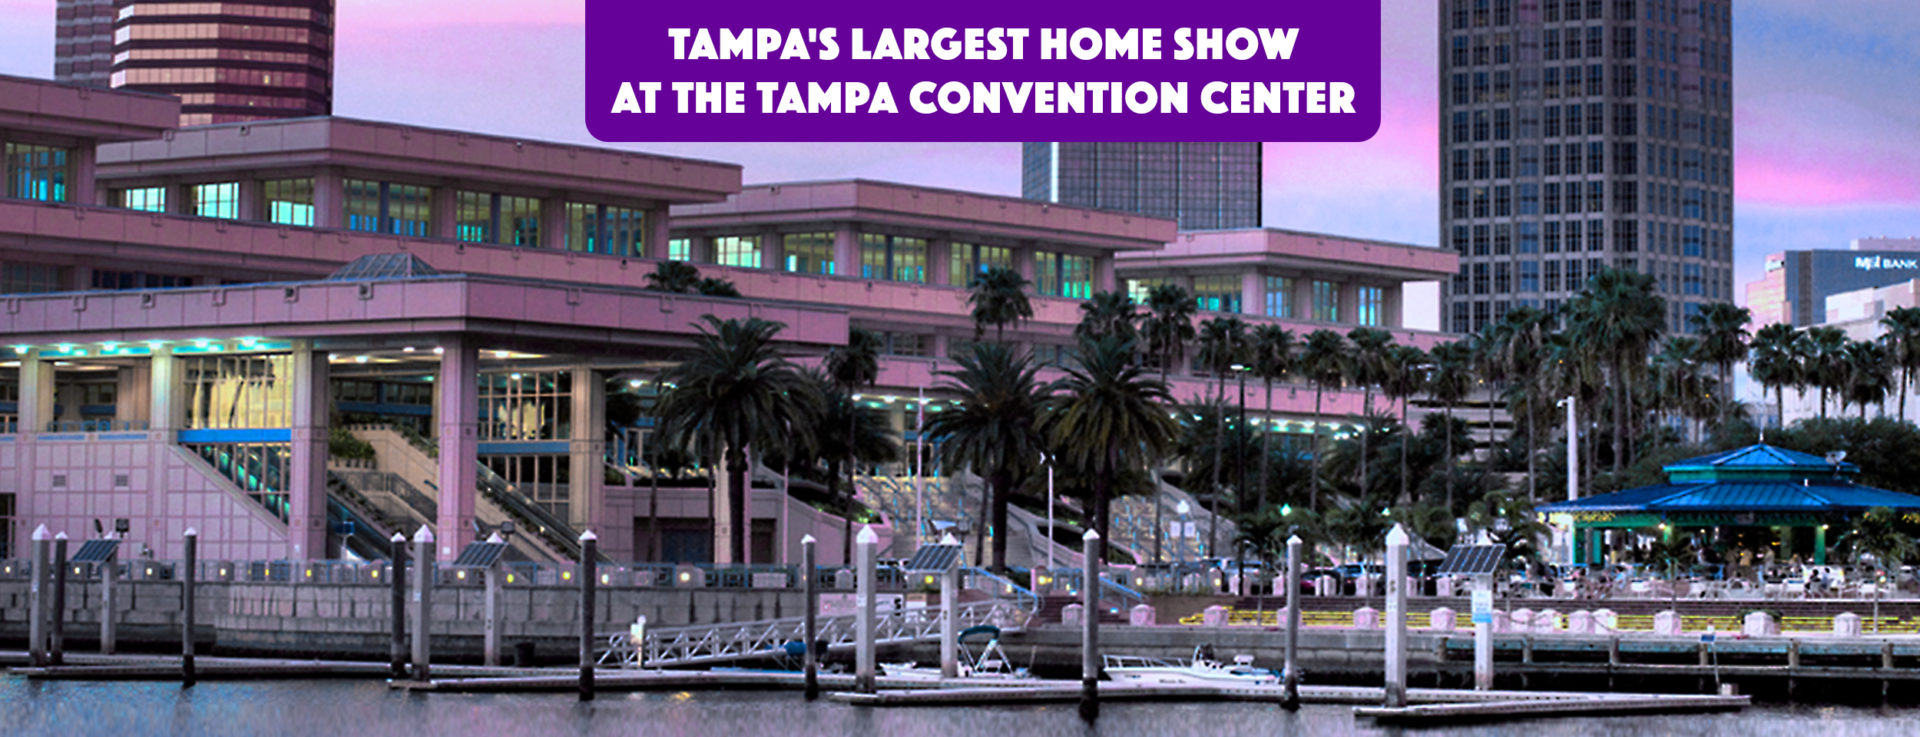 Home Show 2020 Near Me.Tampa Home Show 2020 Build My Stall